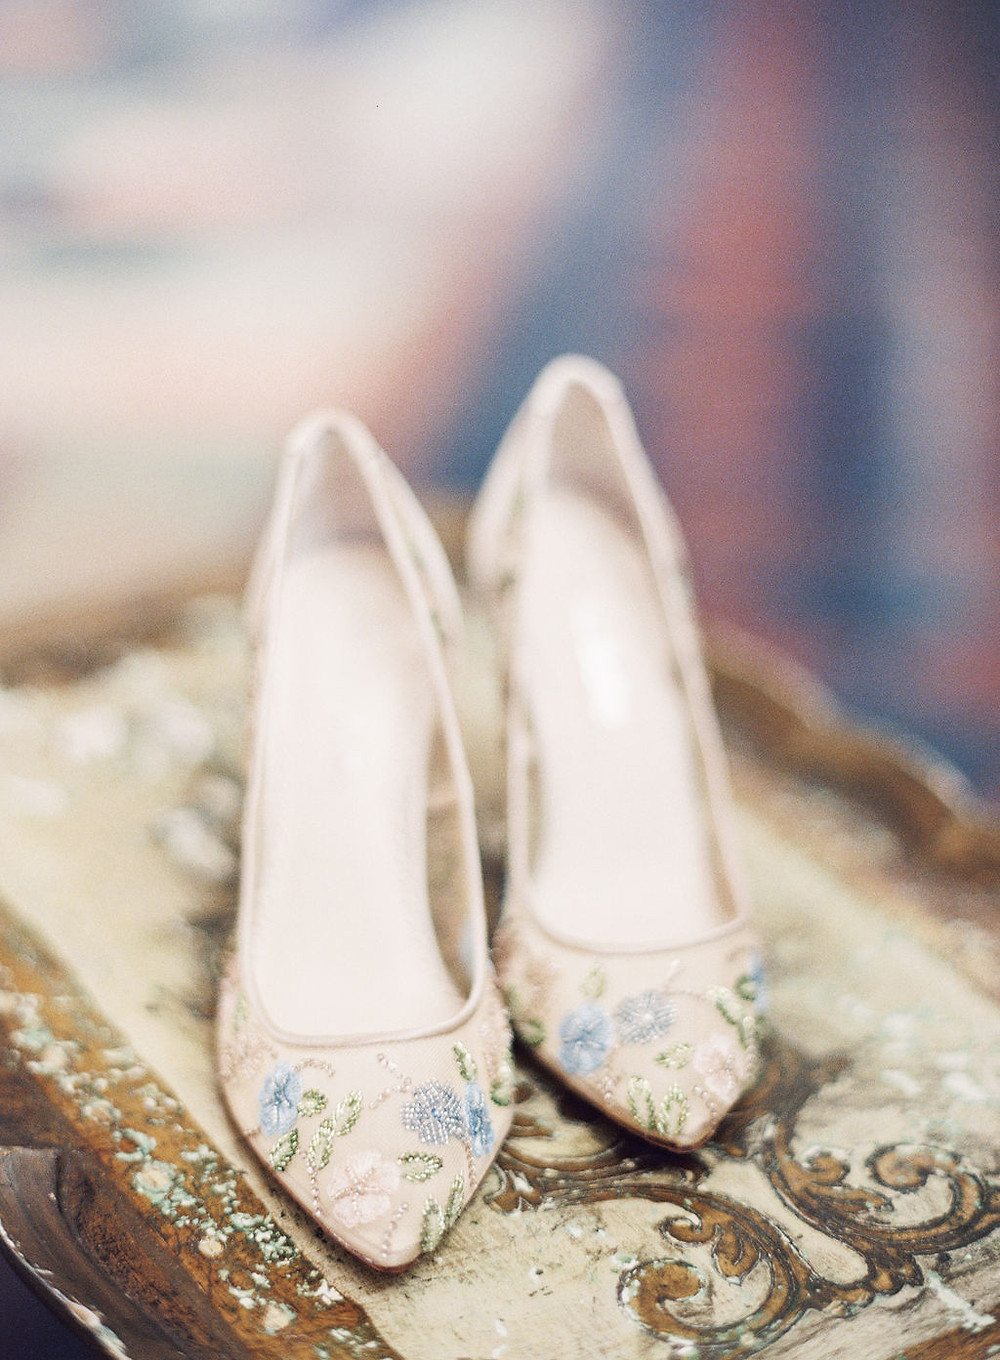 Floral Beaded Wedding Heels  on Antique Gold Side Tables for Bridgerton Inspired Wedding at the Marigny Opera House in New Orleans with Lounge Spaces and Vintage Furniture by Lovegood Rentals